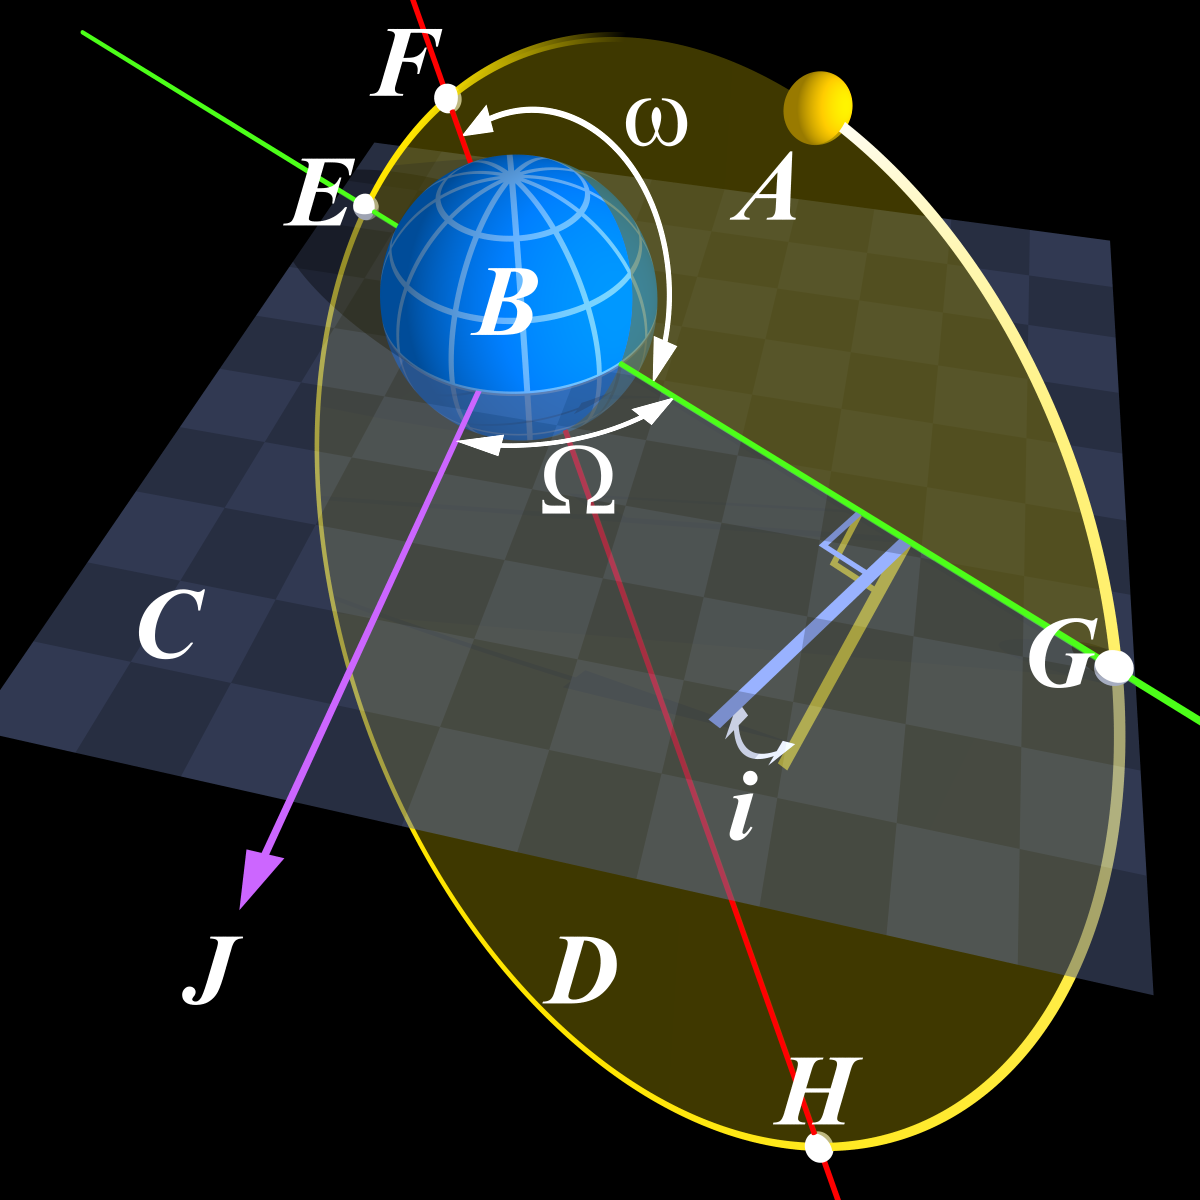 File:Angular Parameters of Elliptical Orbit.png - Wikipedia, the ...